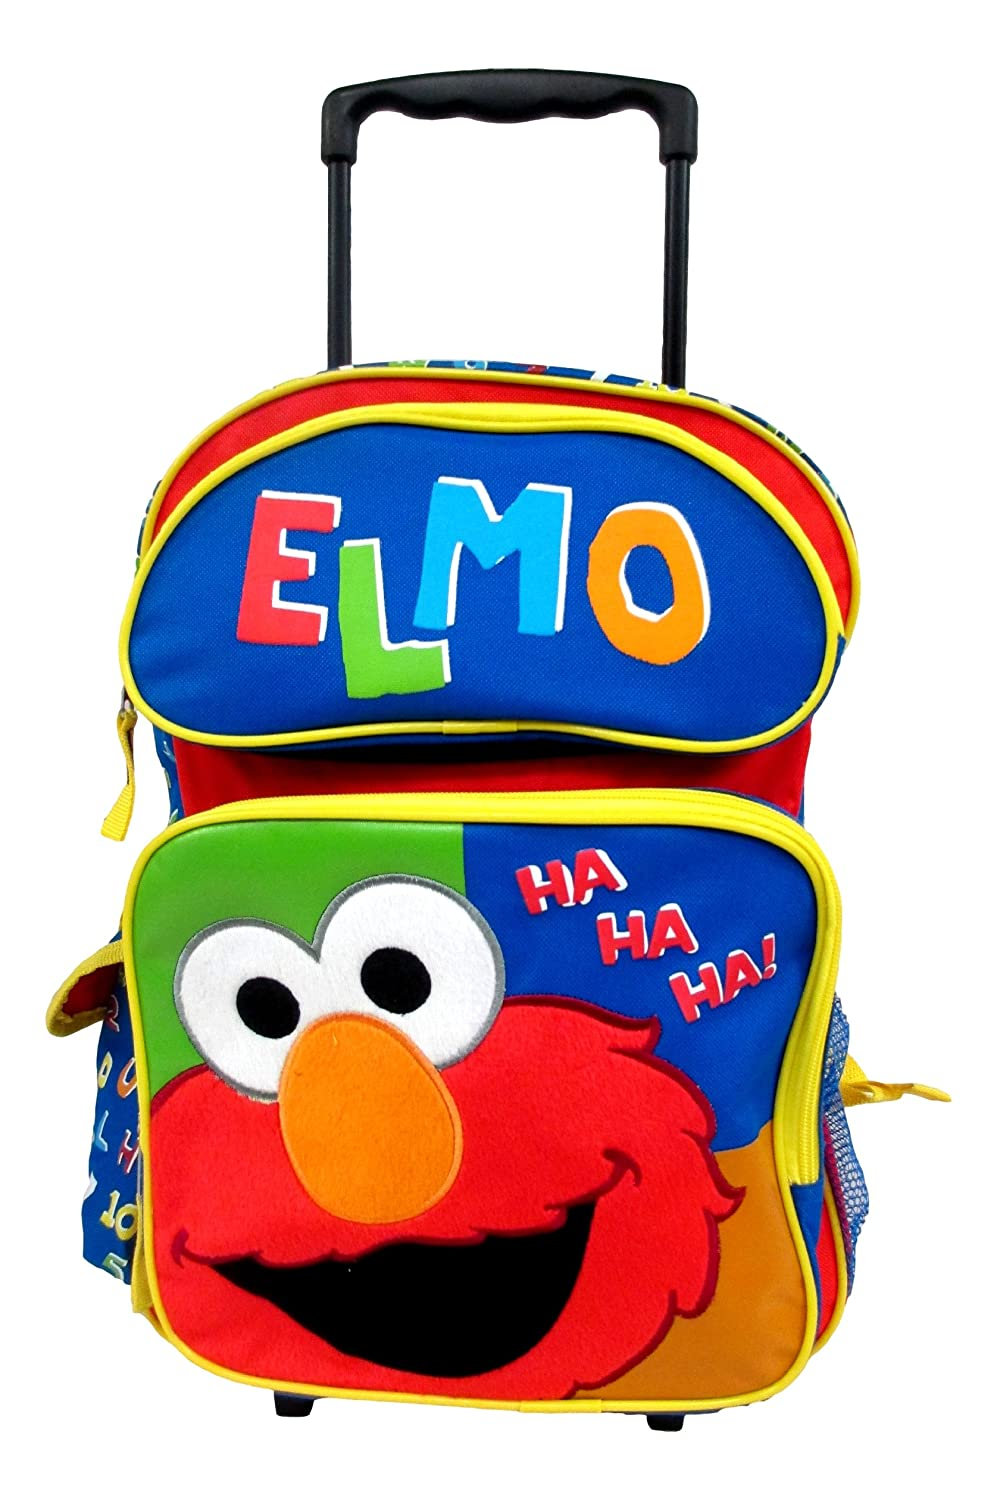 c424cf3d3cea Elmo rolling backpack for toddlers fenix toulouse handball jpg 997x1500  Elmo backpacks for toddlers